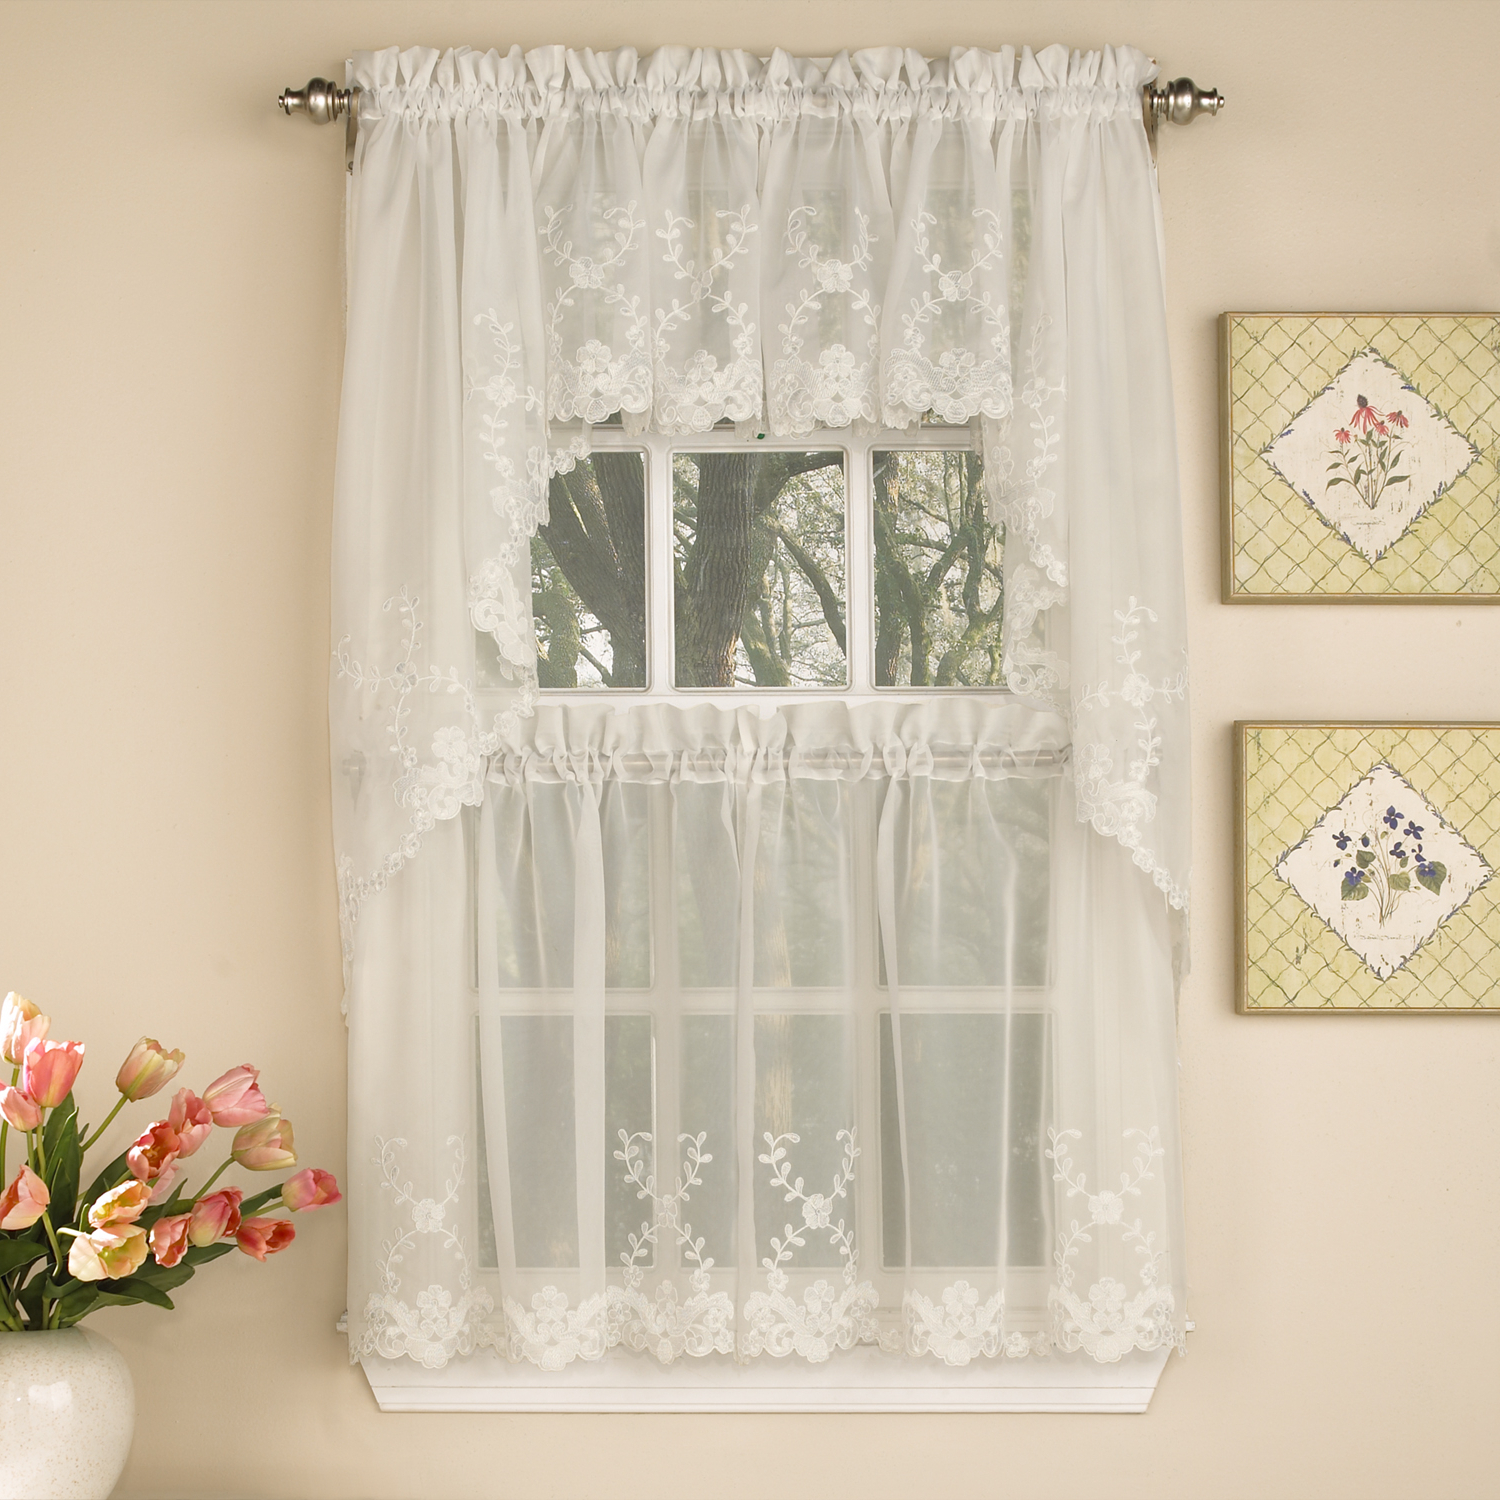 Details About Laurel Leaf Sheer Voile Embroidered Ivory Kitchen Curtains Tier, Valance Or Swag Throughout Best And Newest Ivory Micro Striped Semi Sheer Window Curtain Pieces (View 6 of 20)